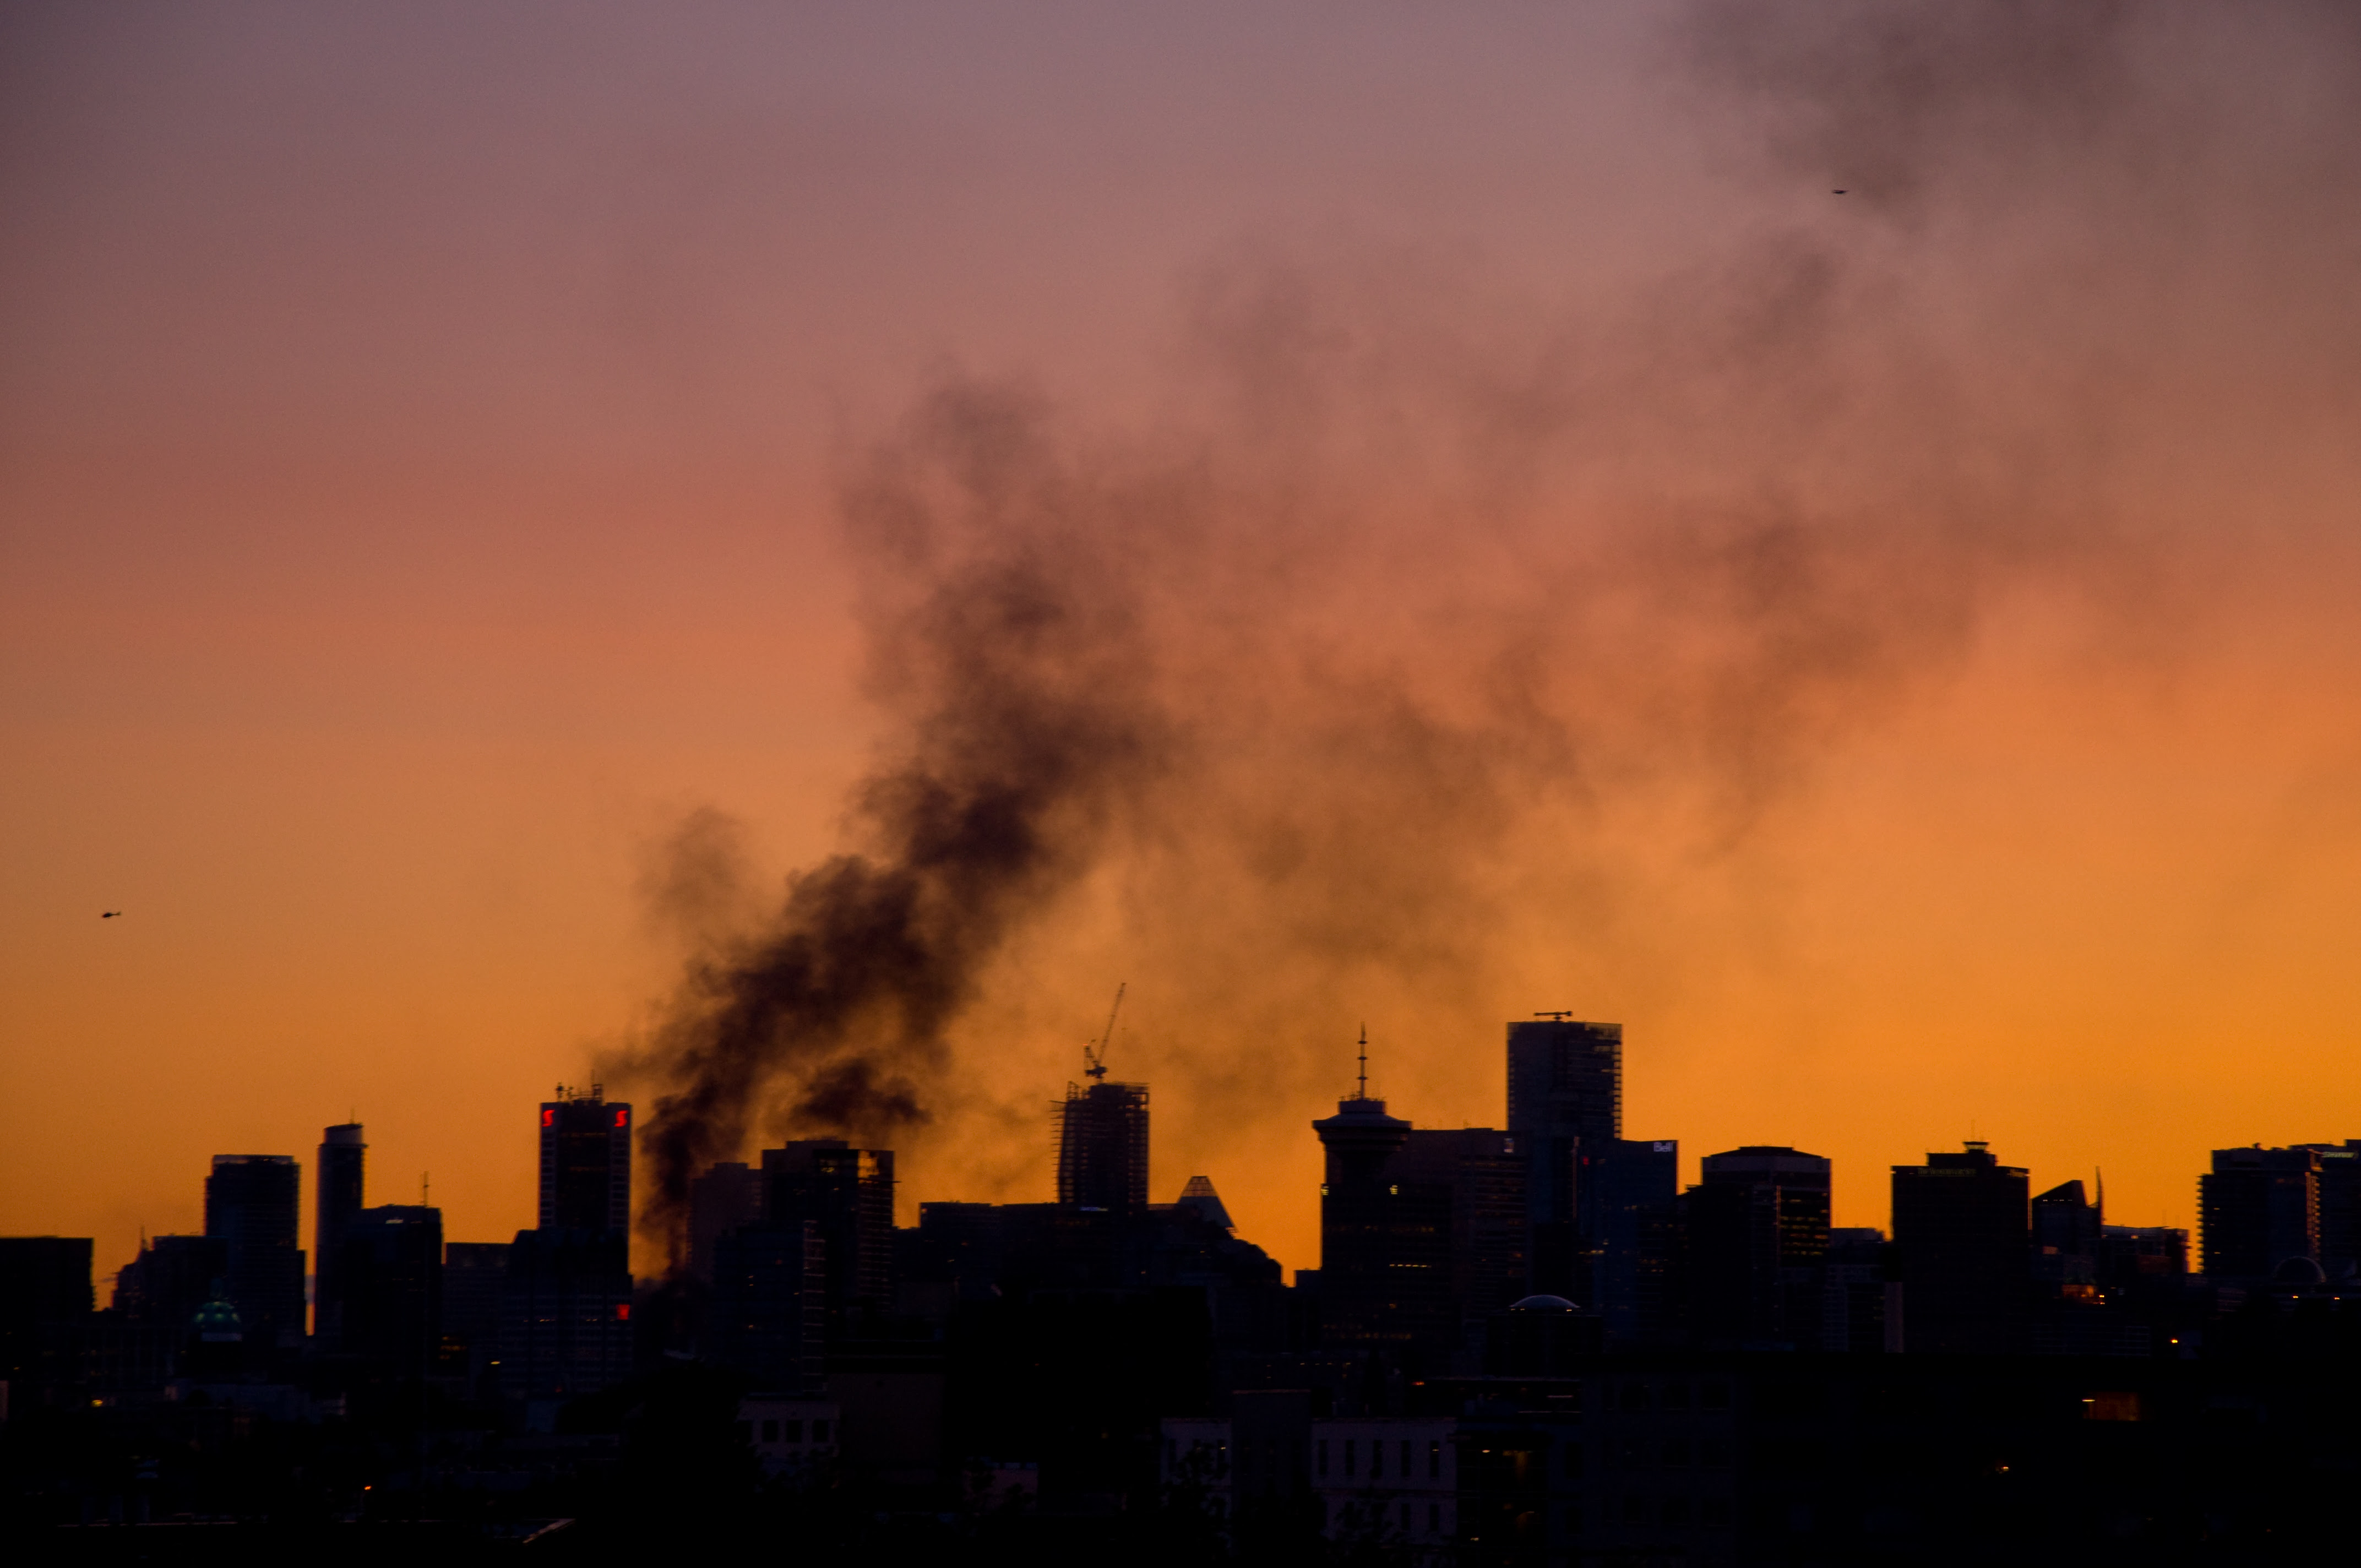 http://upload.wikimedia.org/wikipedia/commons/0/06/Smoke_Over_Vancouver.jpg